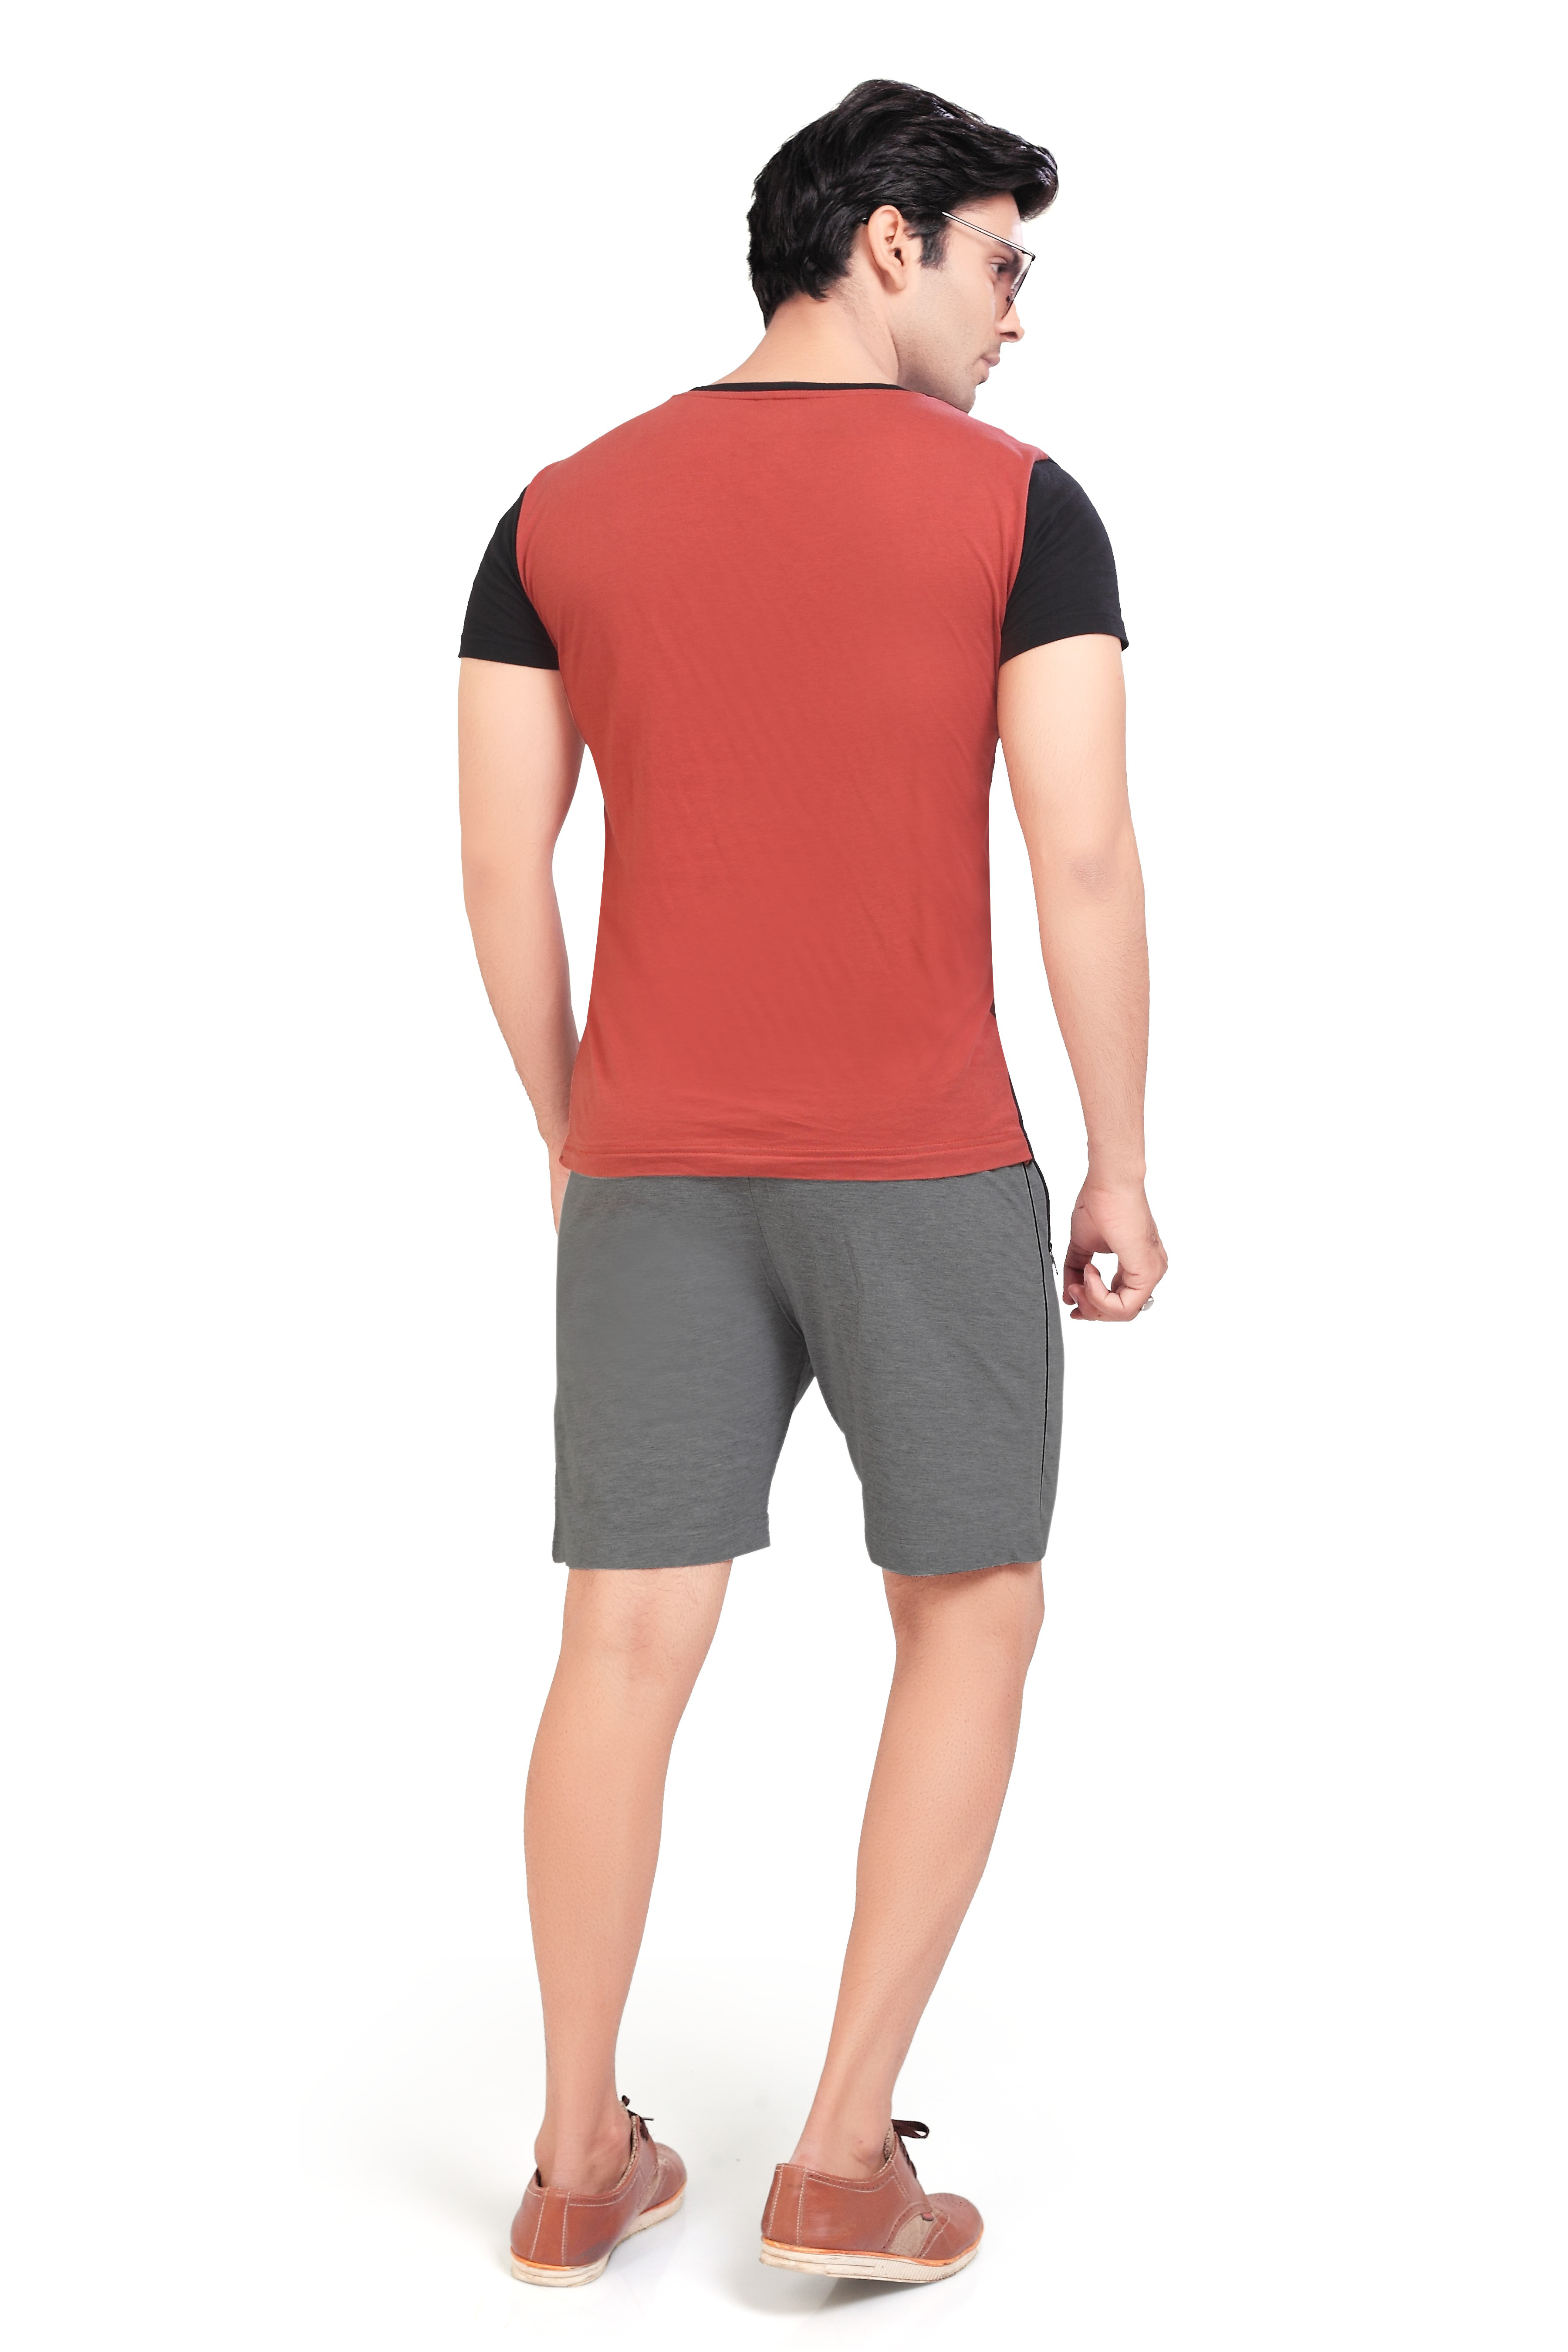 Cotton Mid Rise Shorts With Insert Pocket For Men (5XL, Dark Grey)